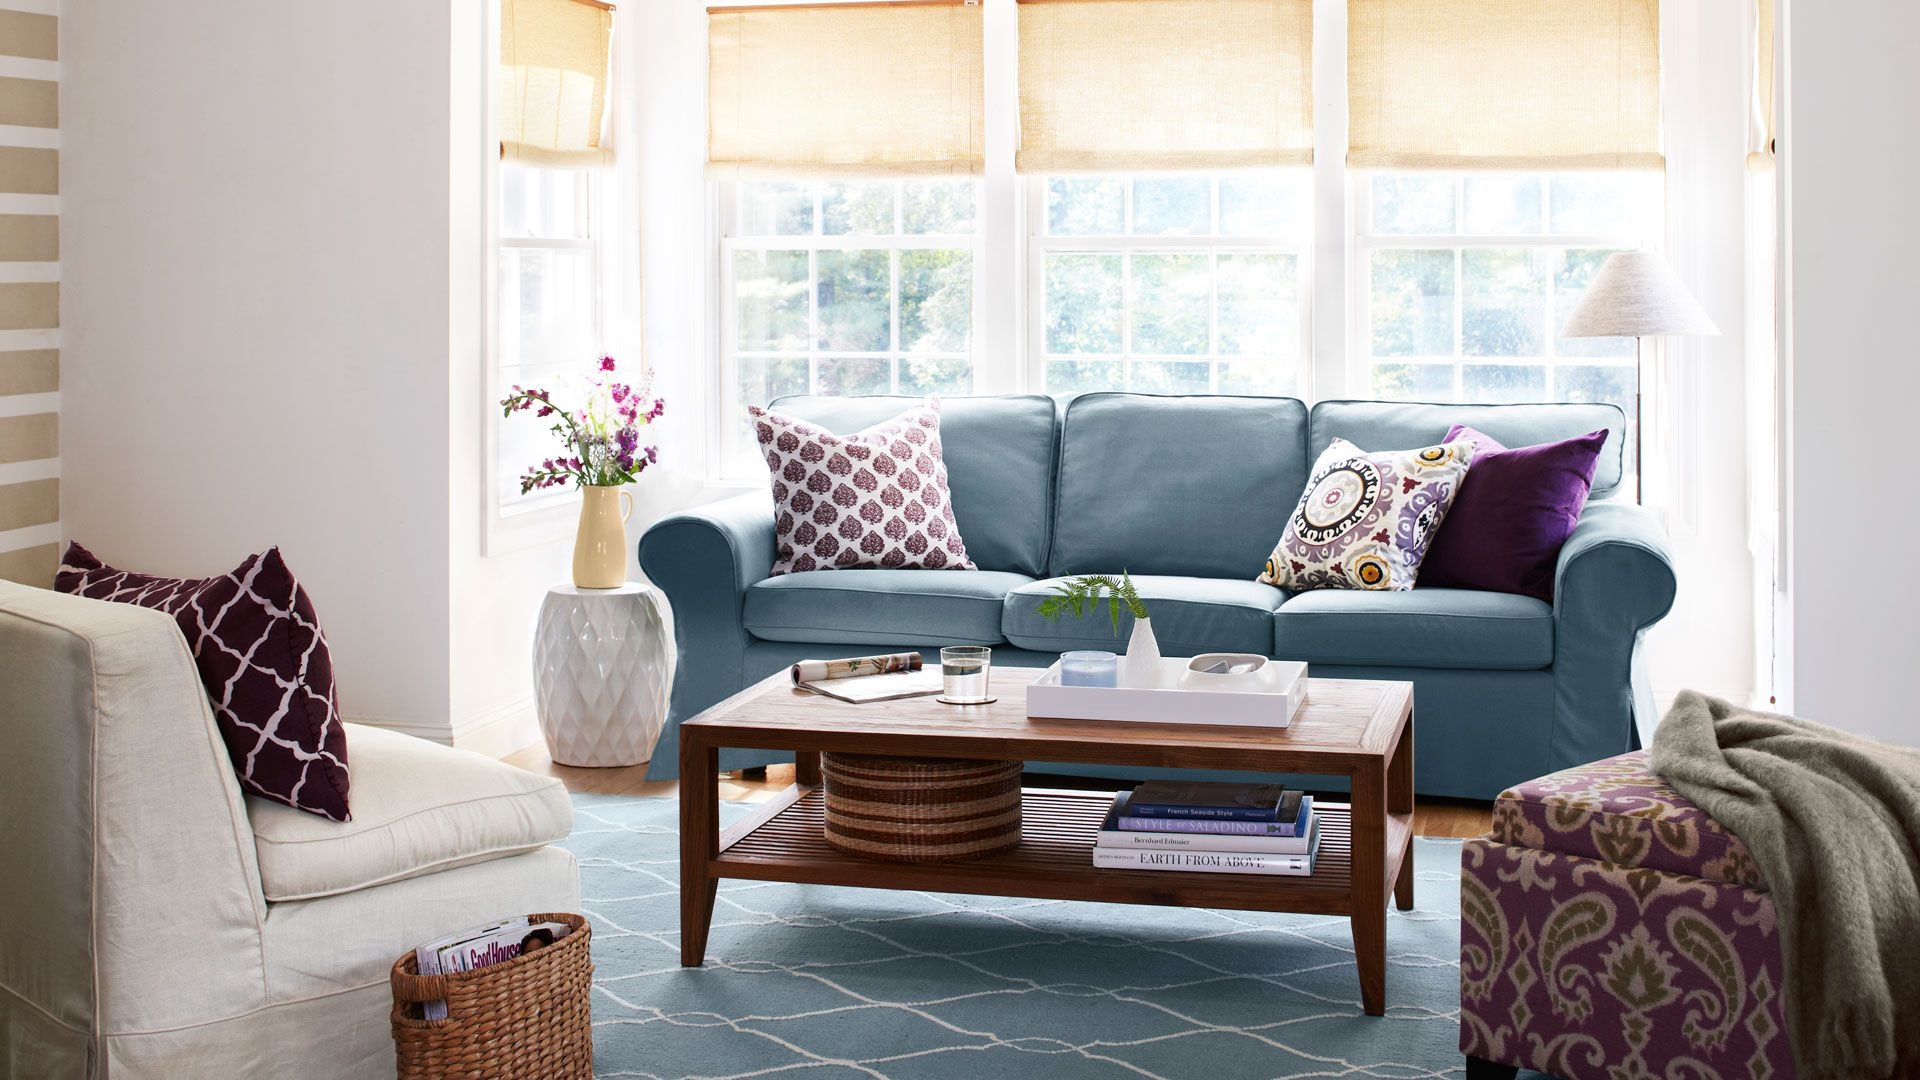 blue couch with throw pillows and coffee table in living room